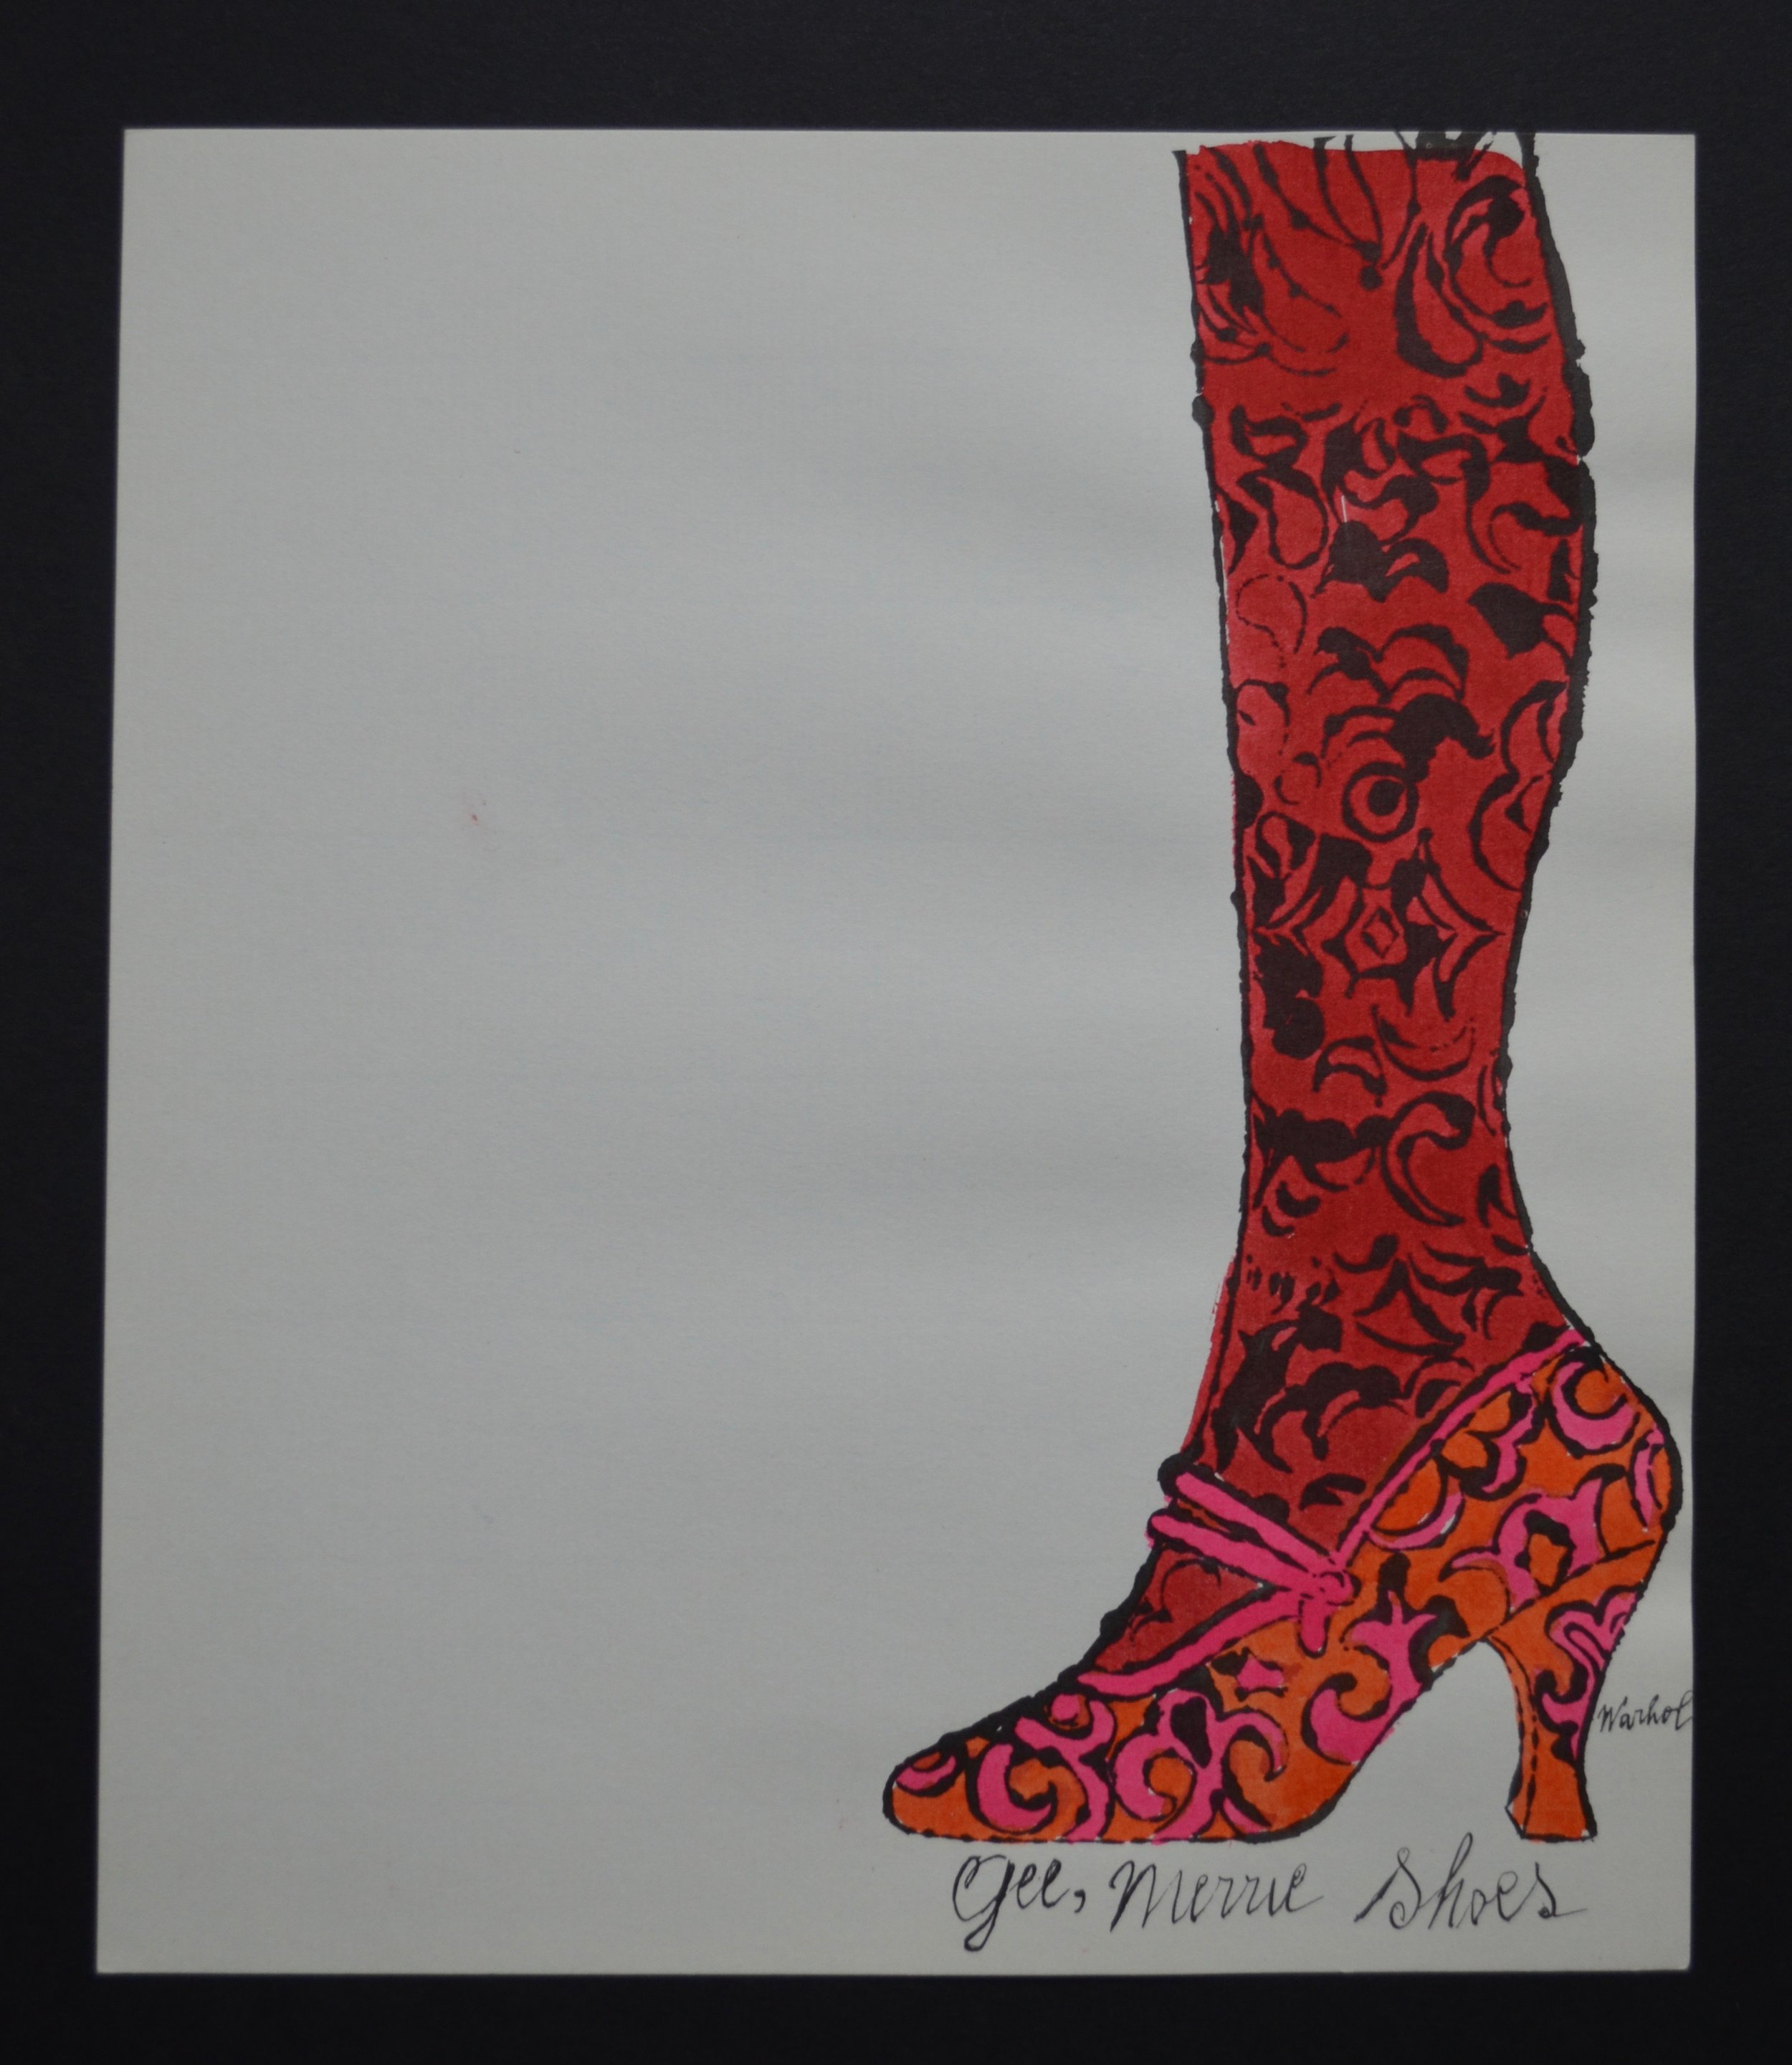 Andy Warhol work on paper of shoe with (possibly) his mother's handwriting, titled Gee Merrie Shoe